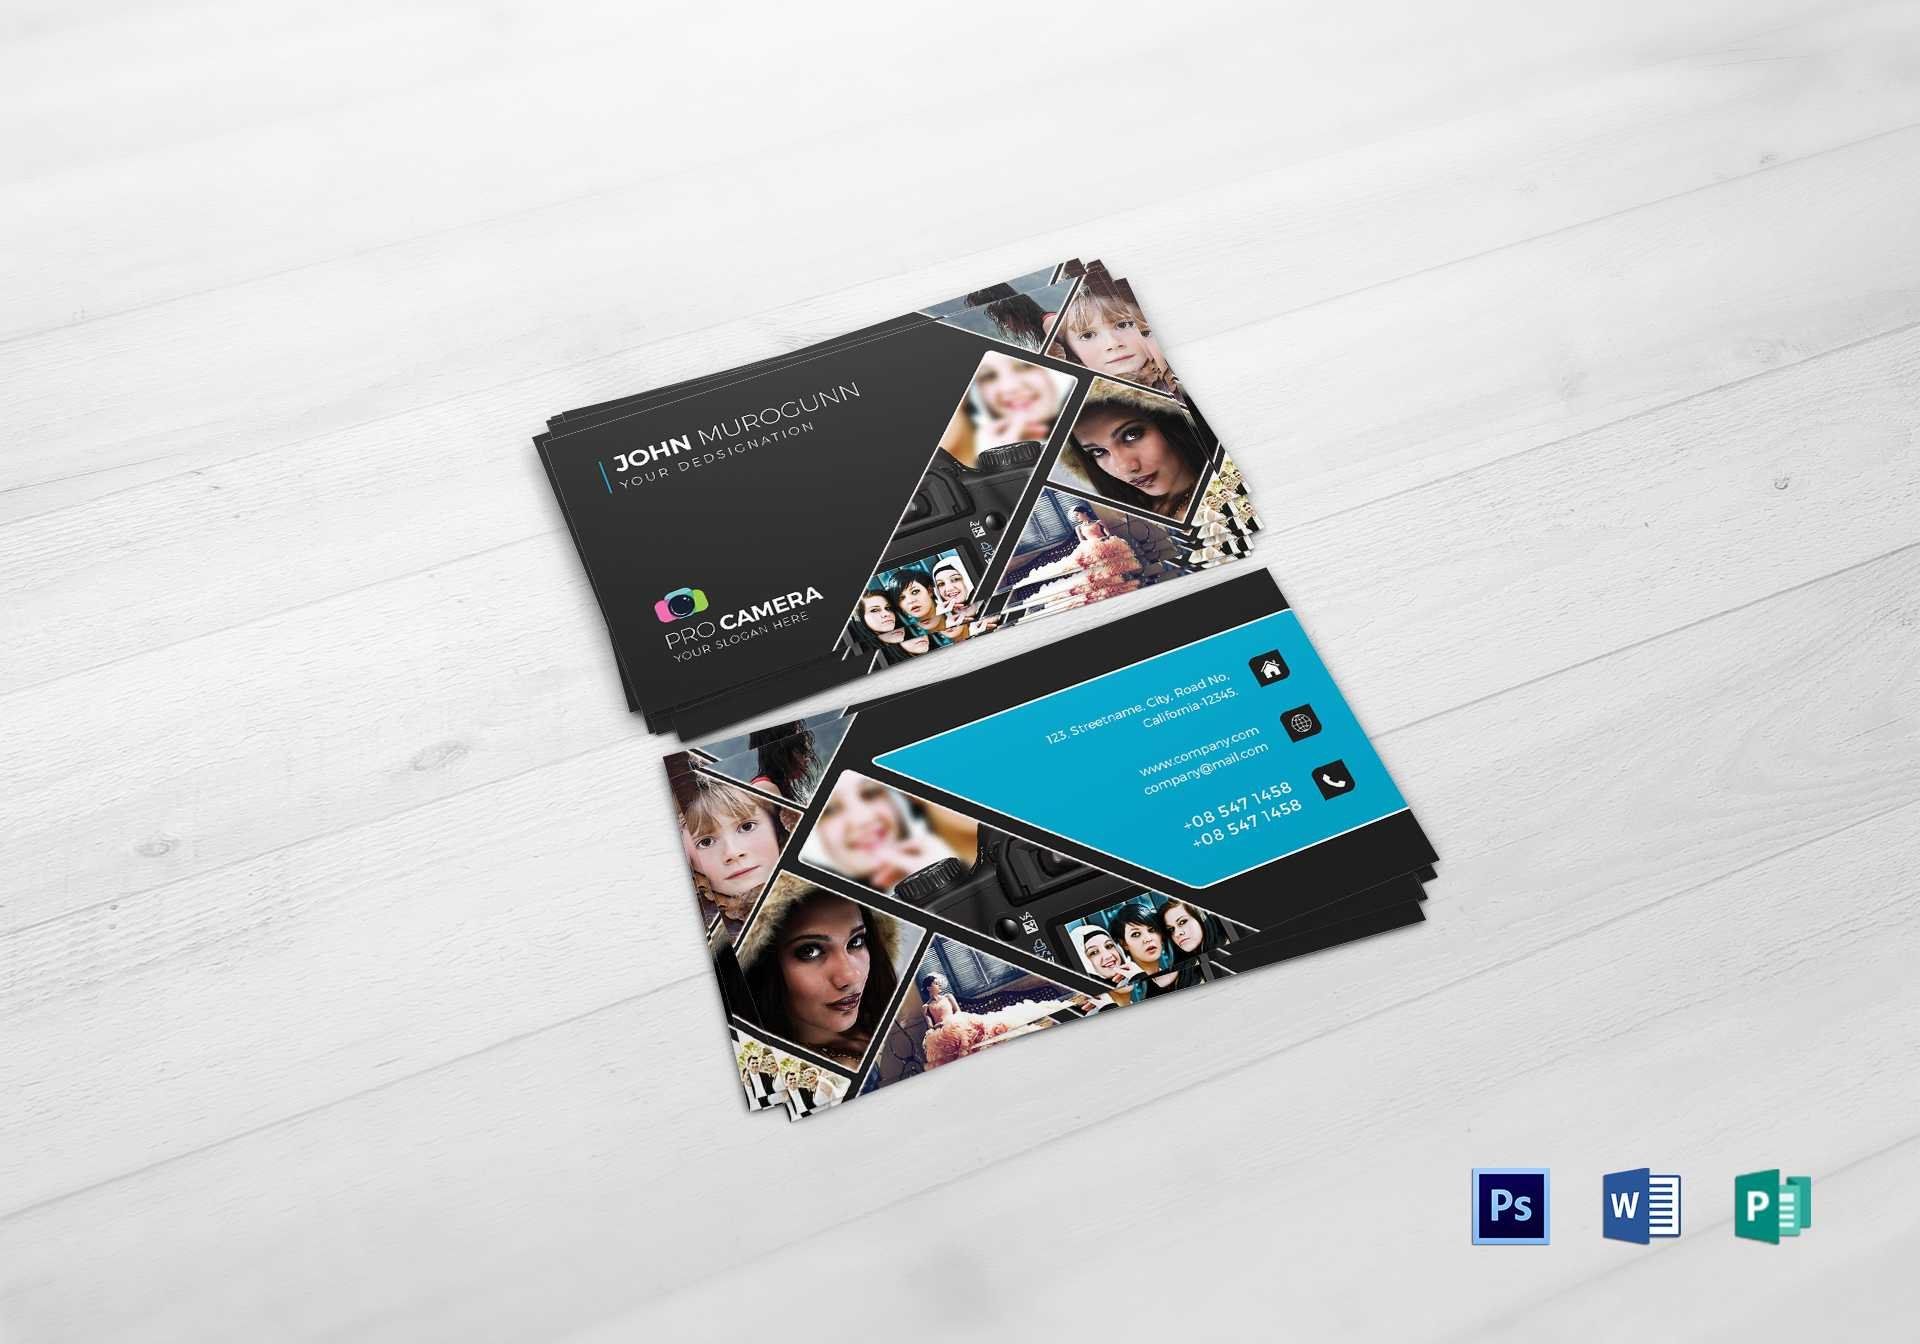 005 Photography Business Card Template Photoshop Awesome Throughout Photography Business Card Template Photoshop